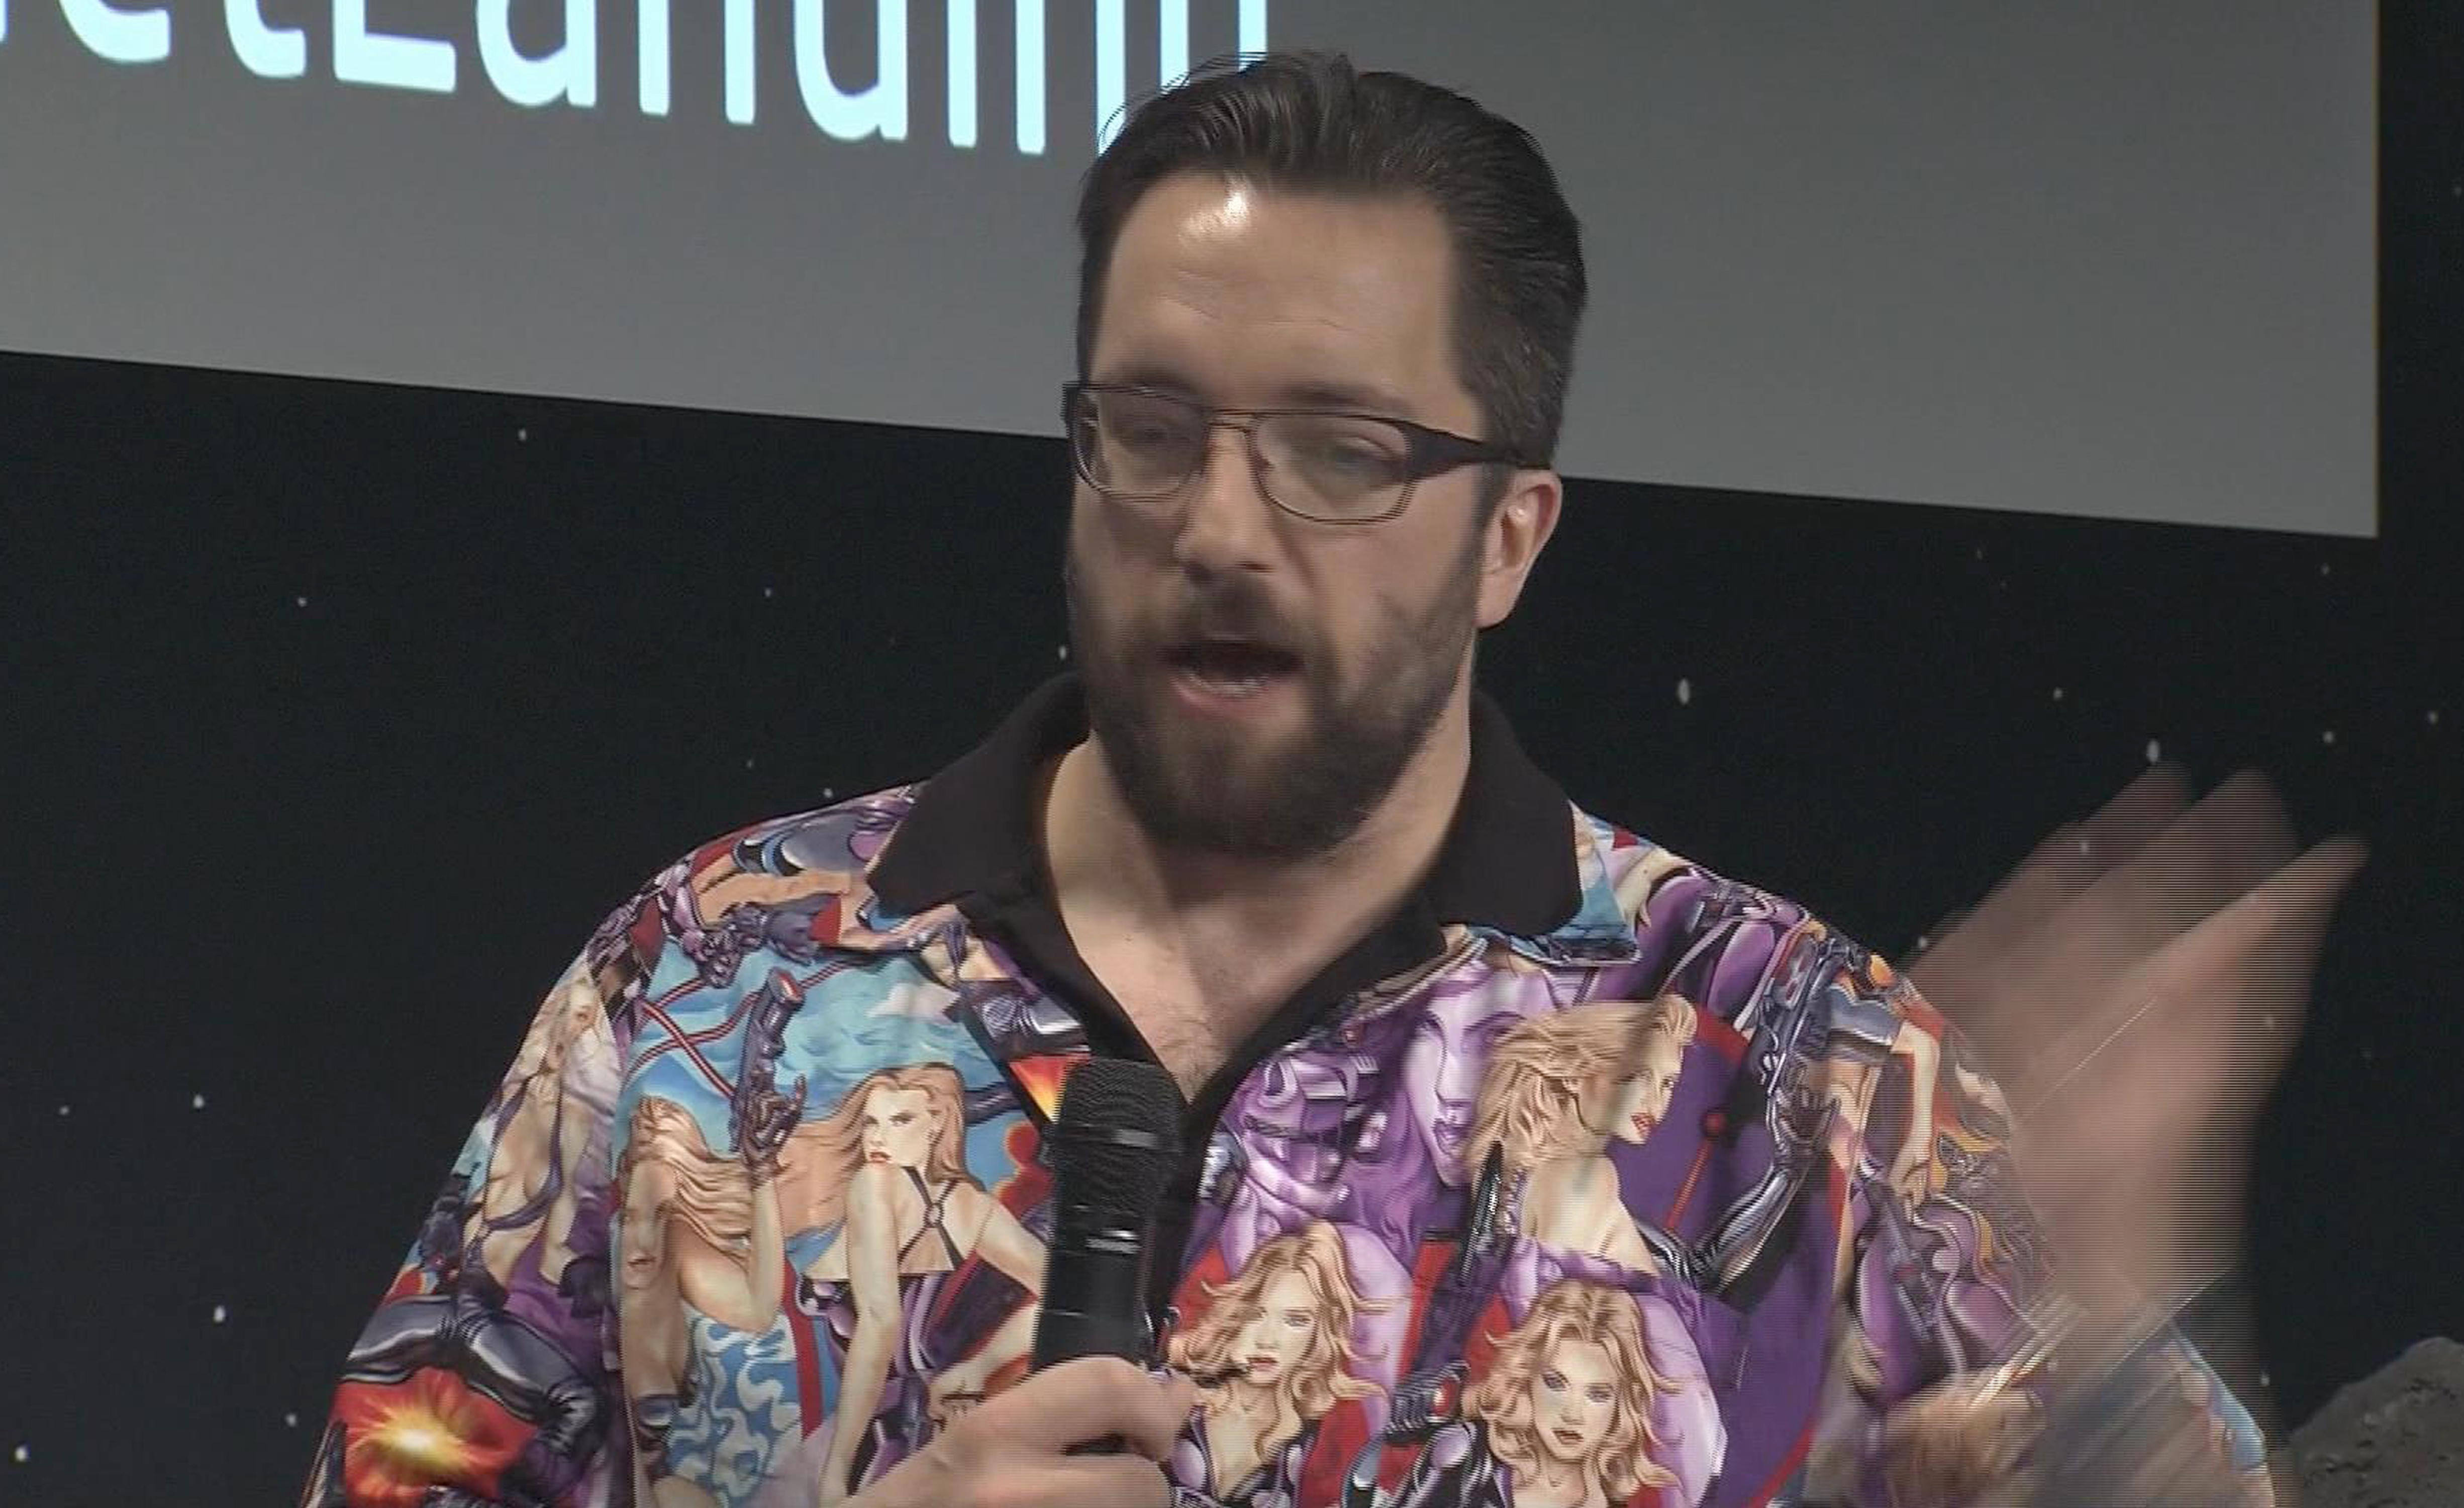 British physicist Matt Taylor sporting a garish shirt featuring a collage of pin-up girls during an interview at the satellite control centre of the European Space Agency in Darmstadt, Germany on Nov. 13, 2014.